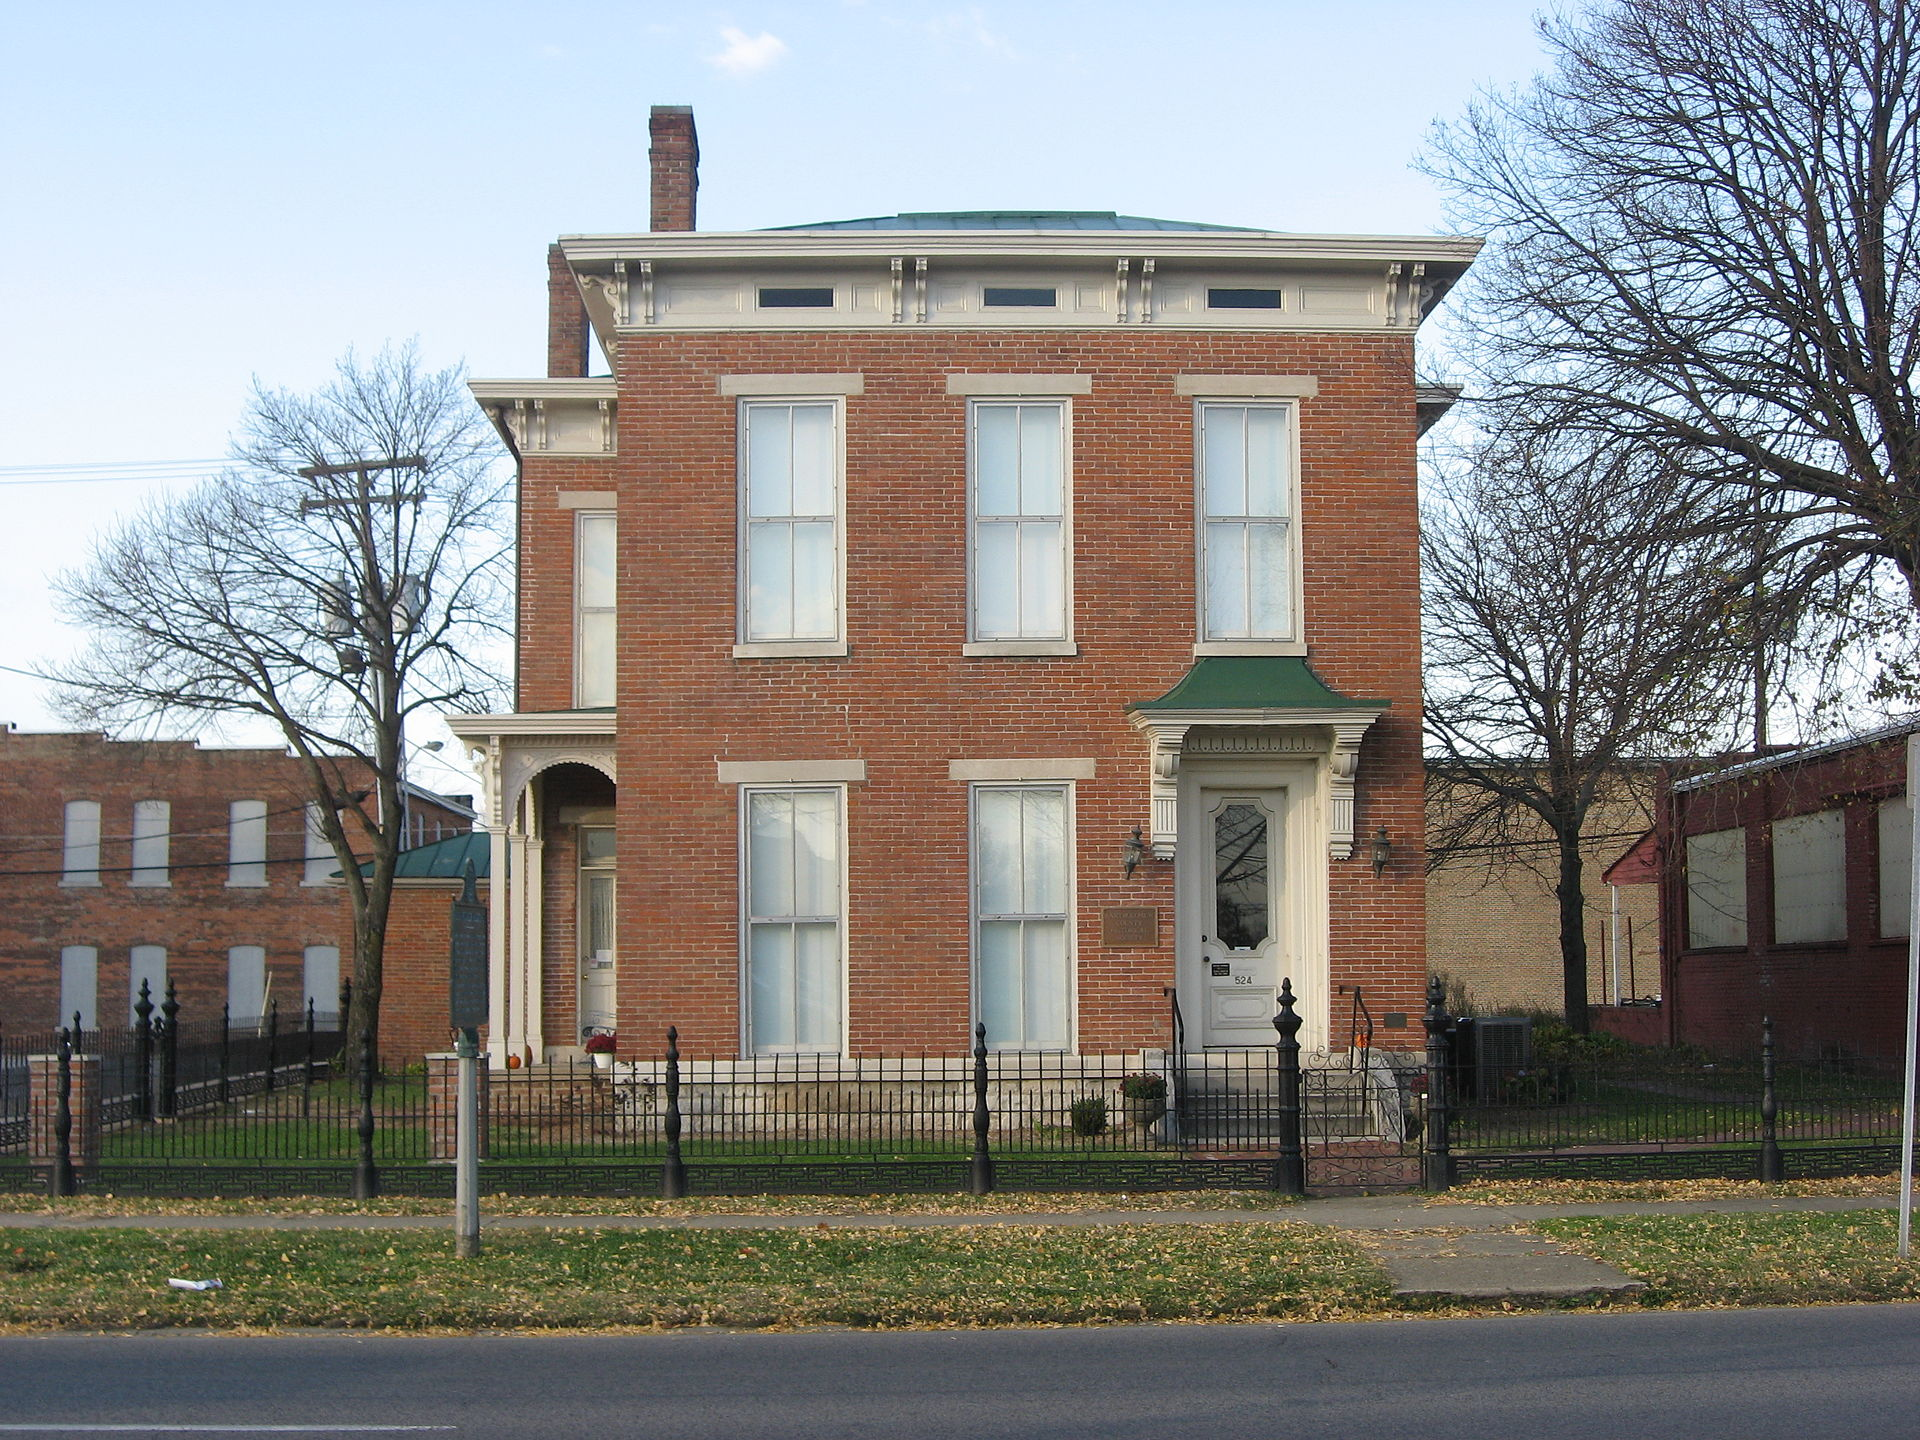 The McEwen-Samuels-Marr House, now the Bartholomew County Historical Museum.